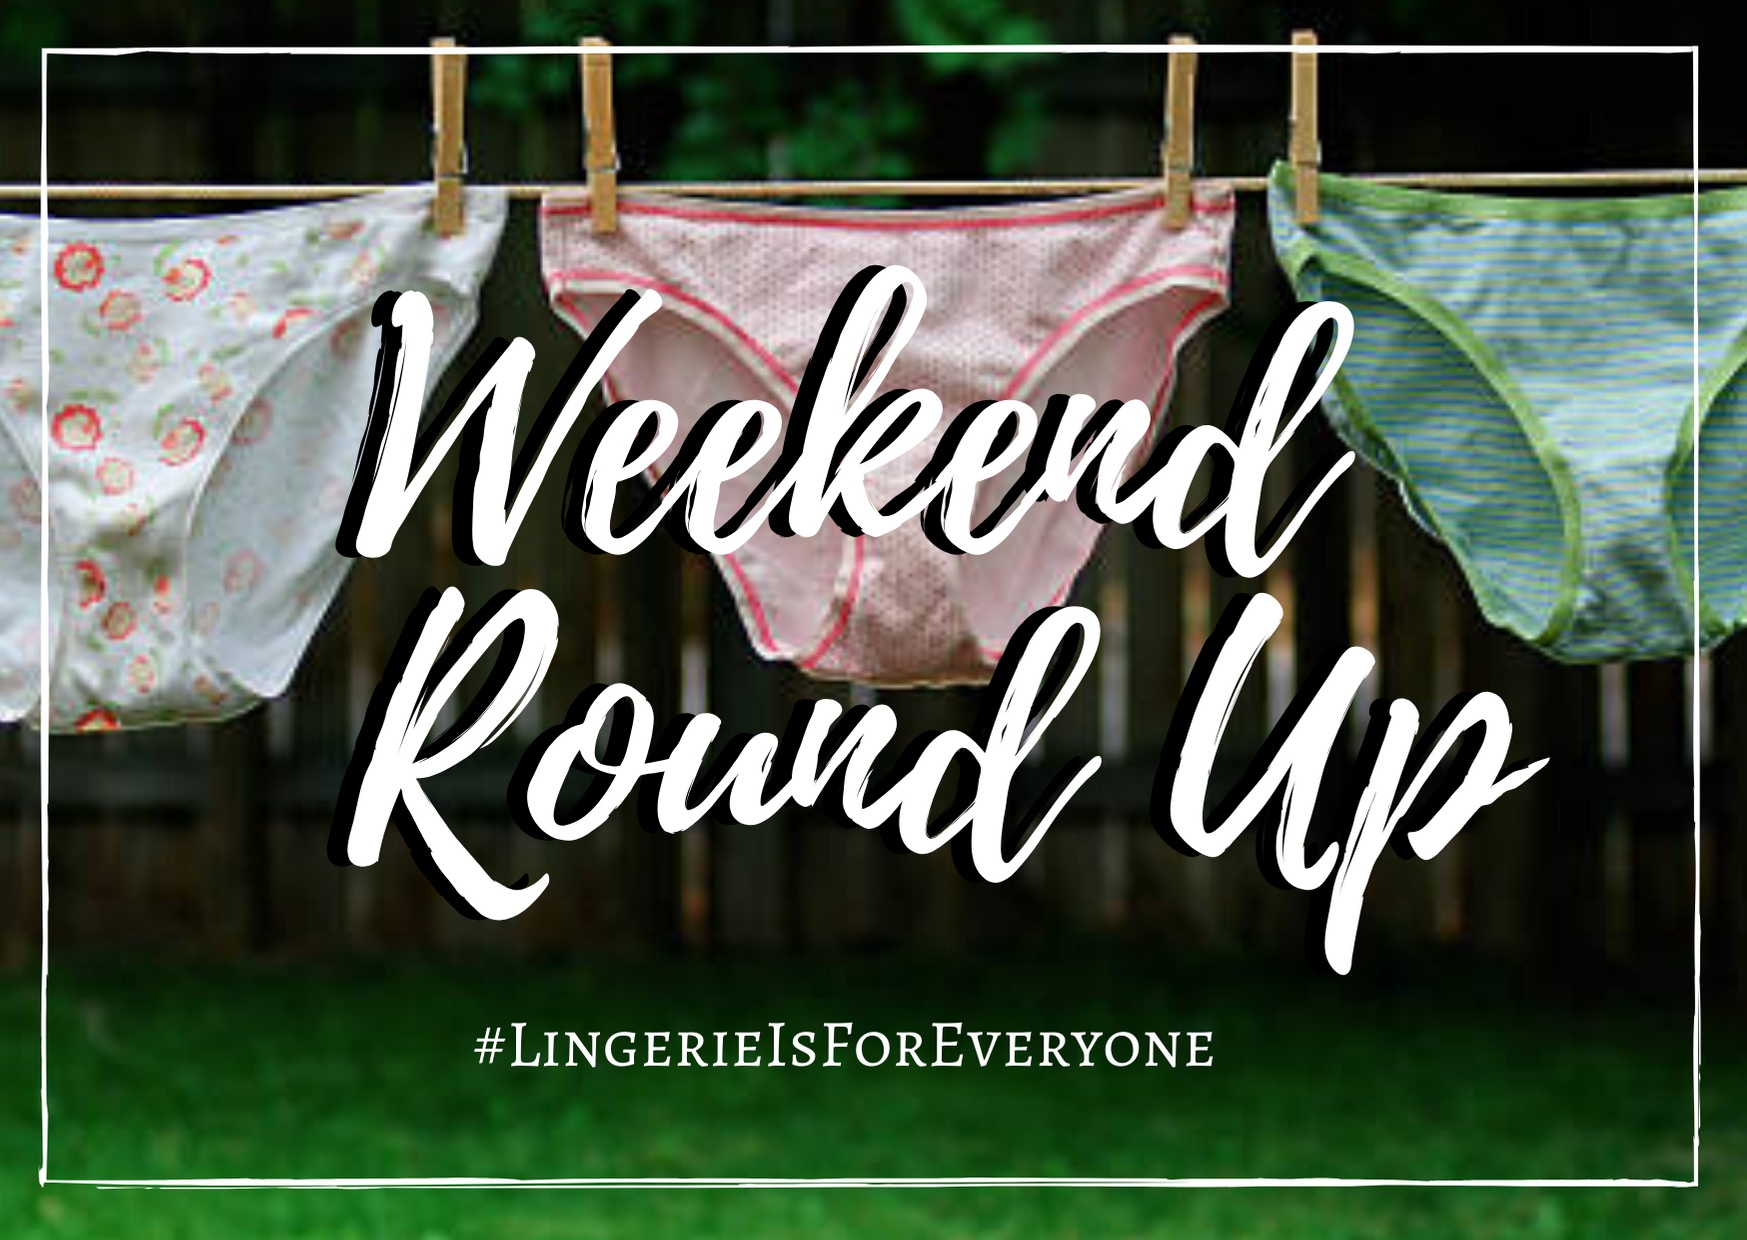 Weekend Round Up